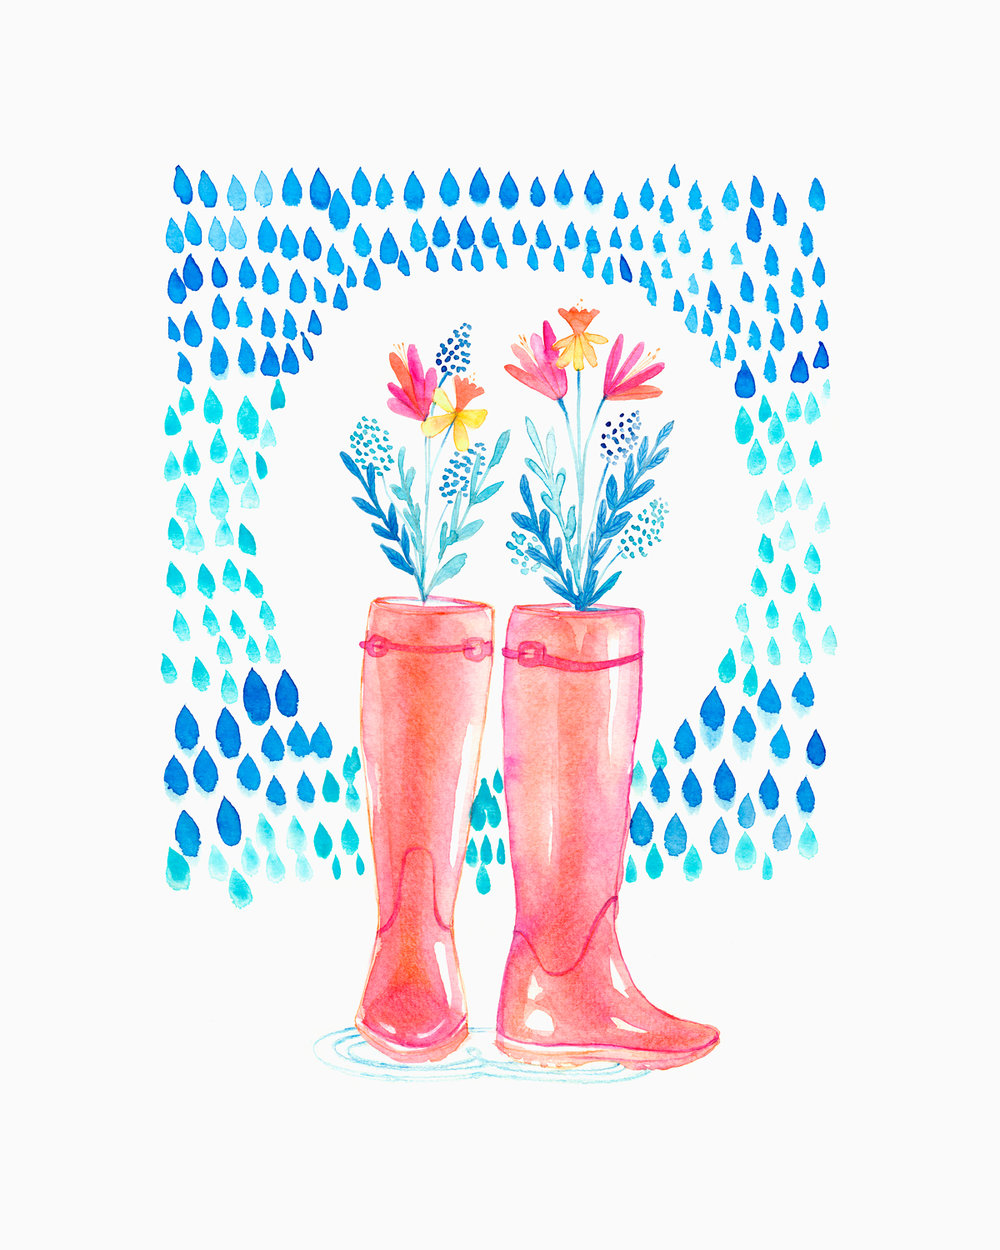 website_rainboots.jpg